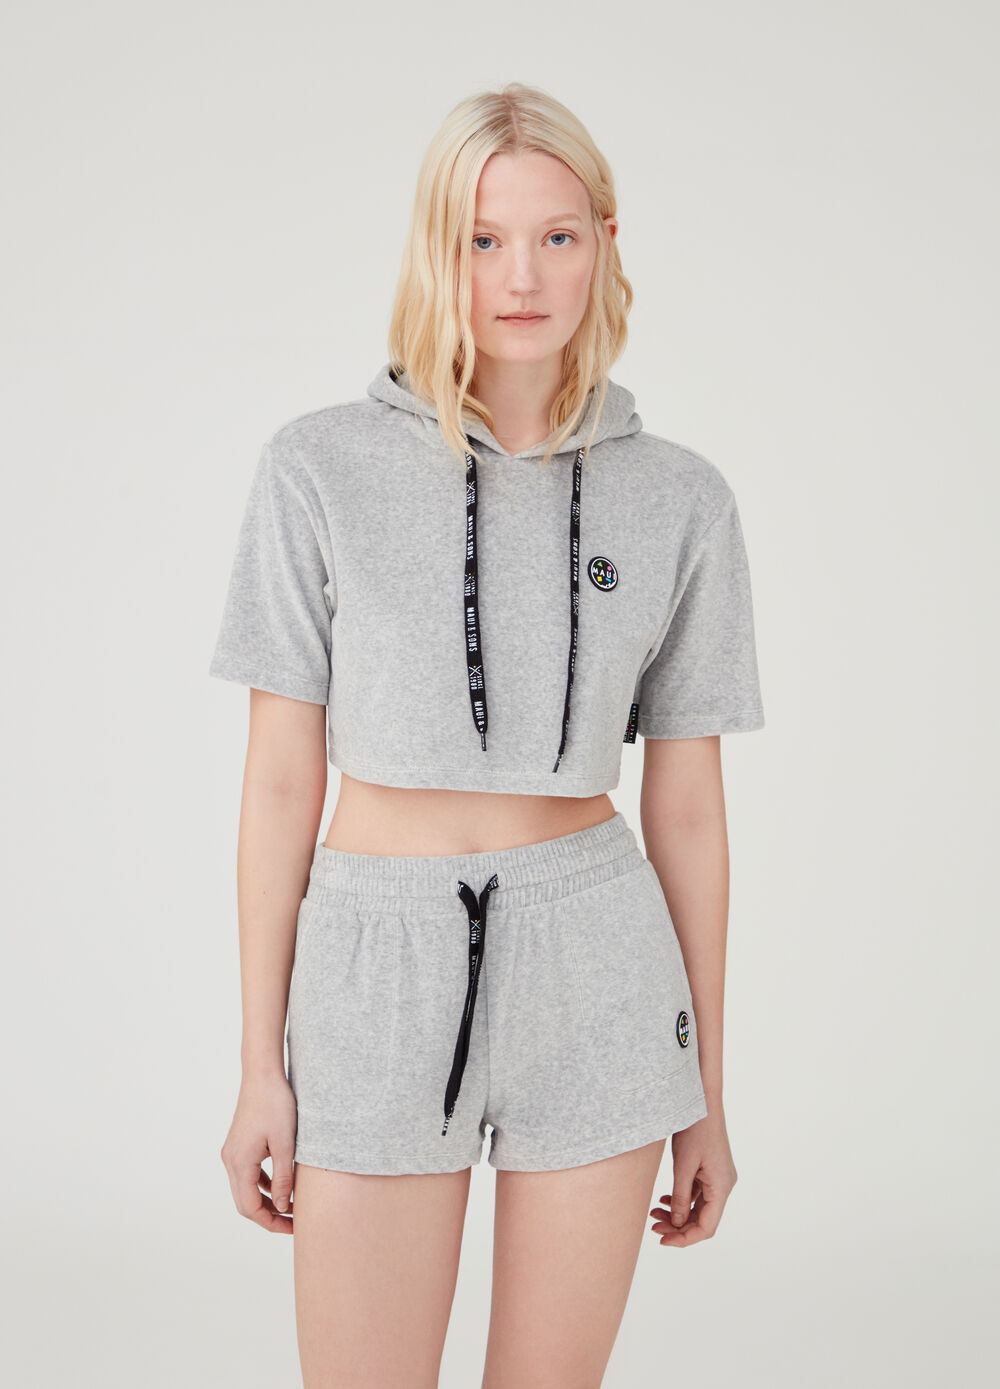 Crop sweatshirt with hood by Maui and Sons